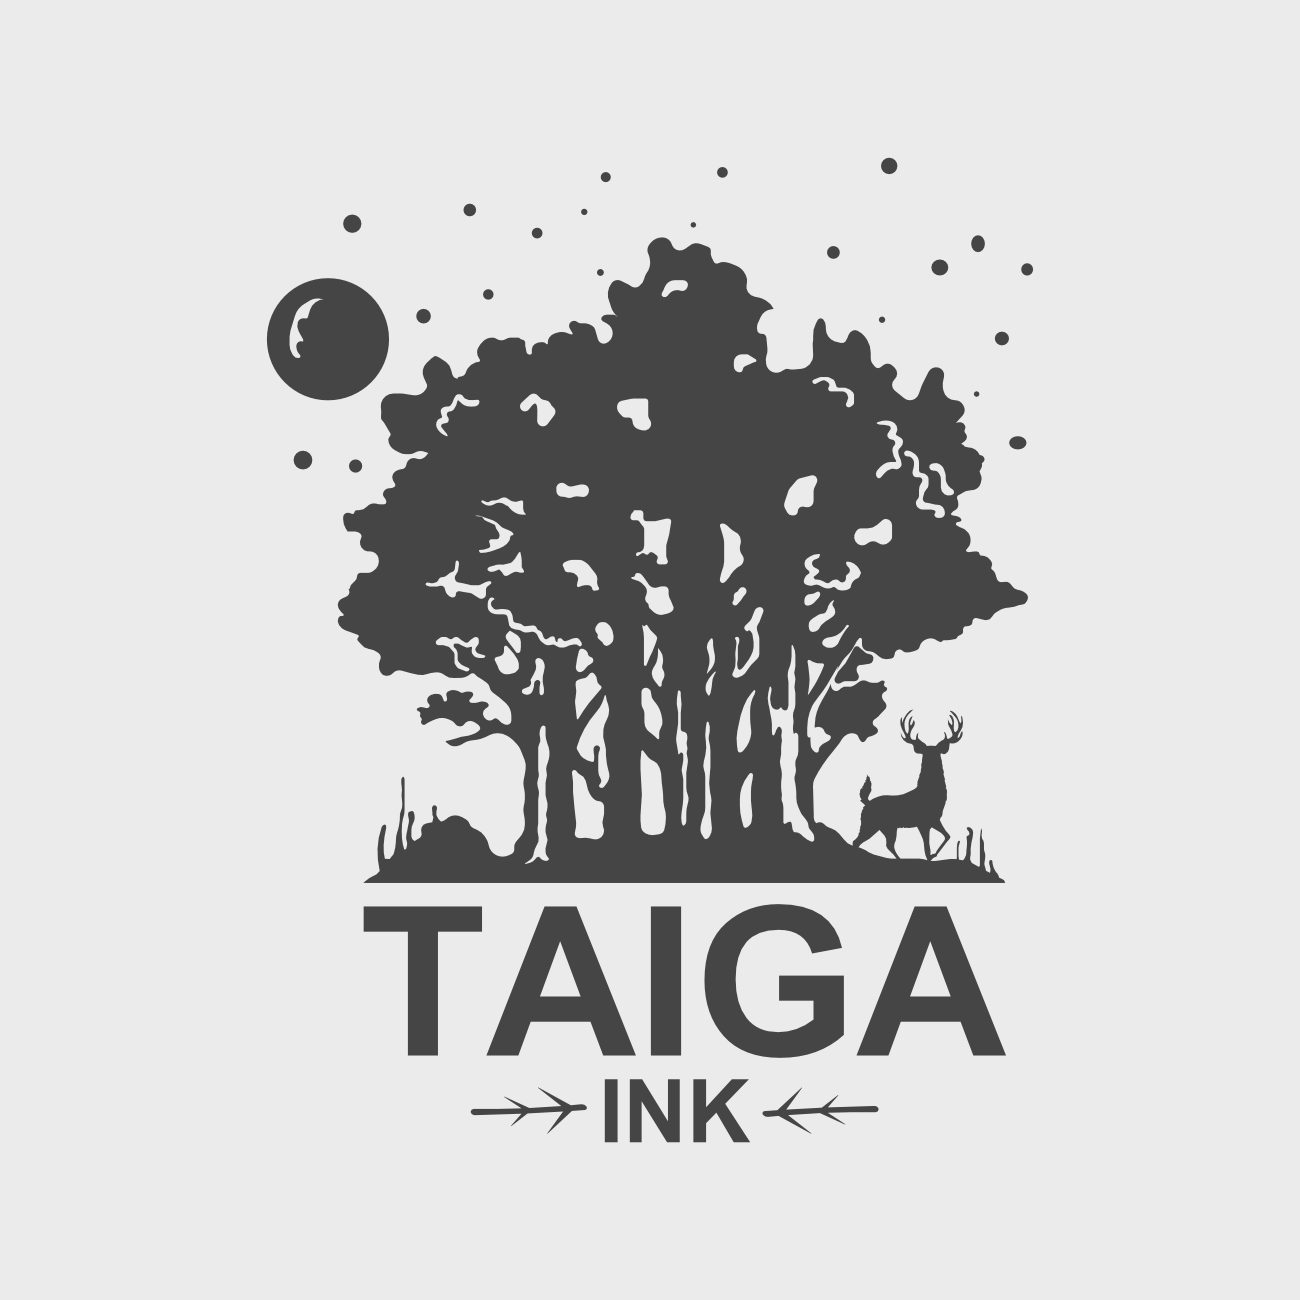 Taiga Ink logo in collaboration with Taiga Ink